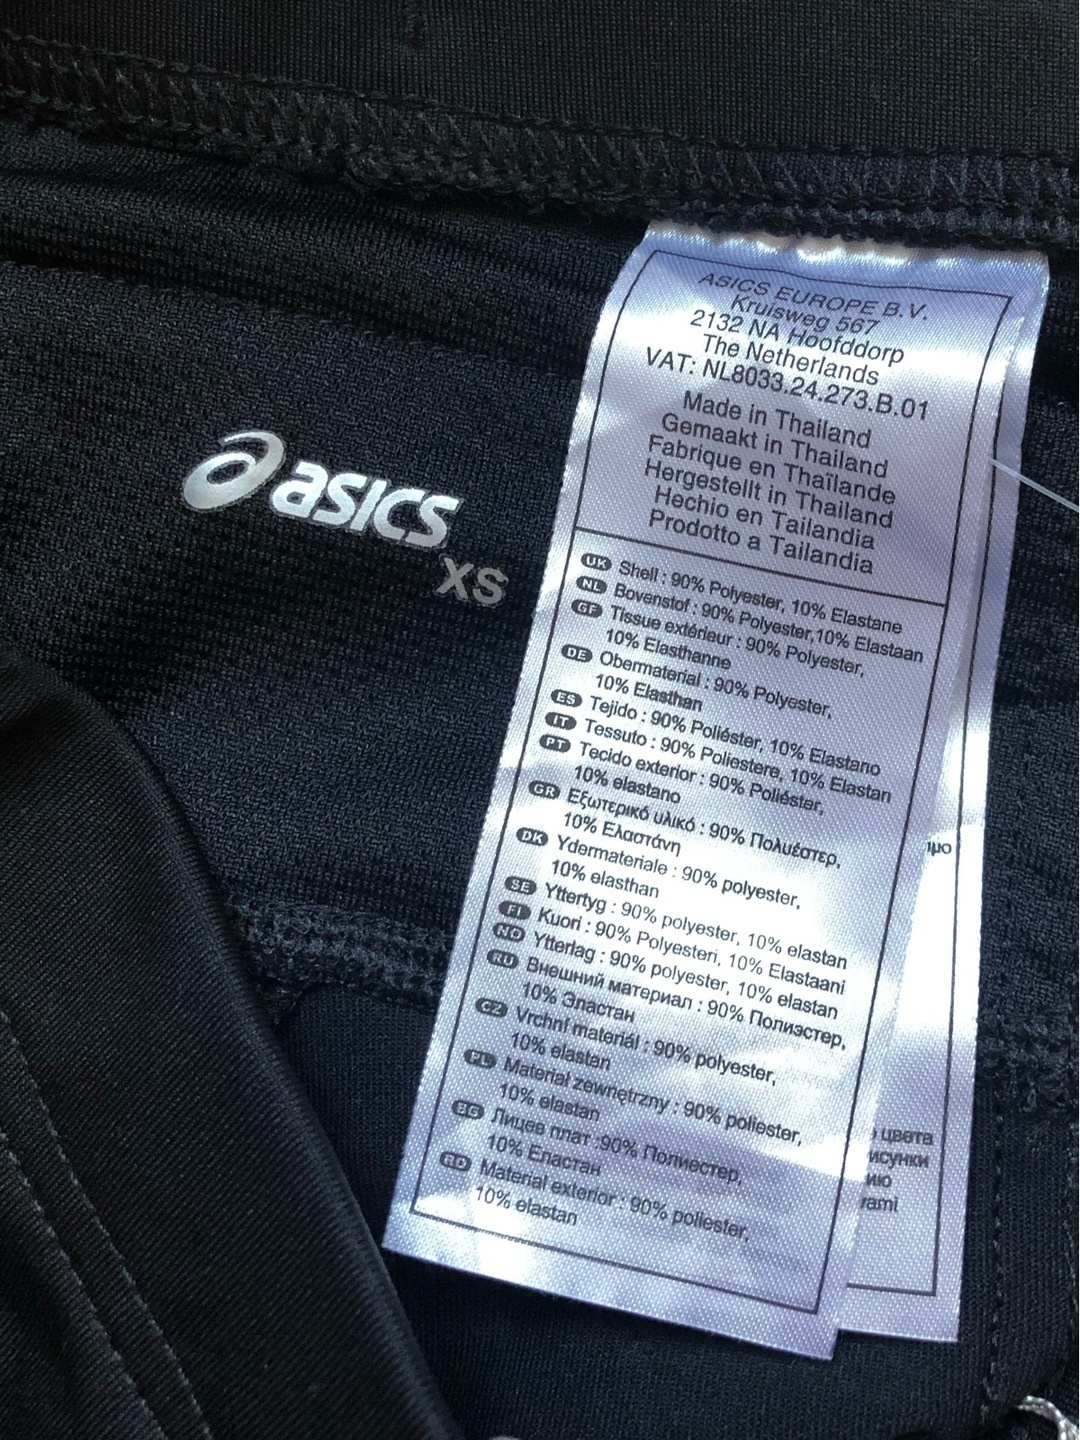 Women's sportswear - ASICS photo 4